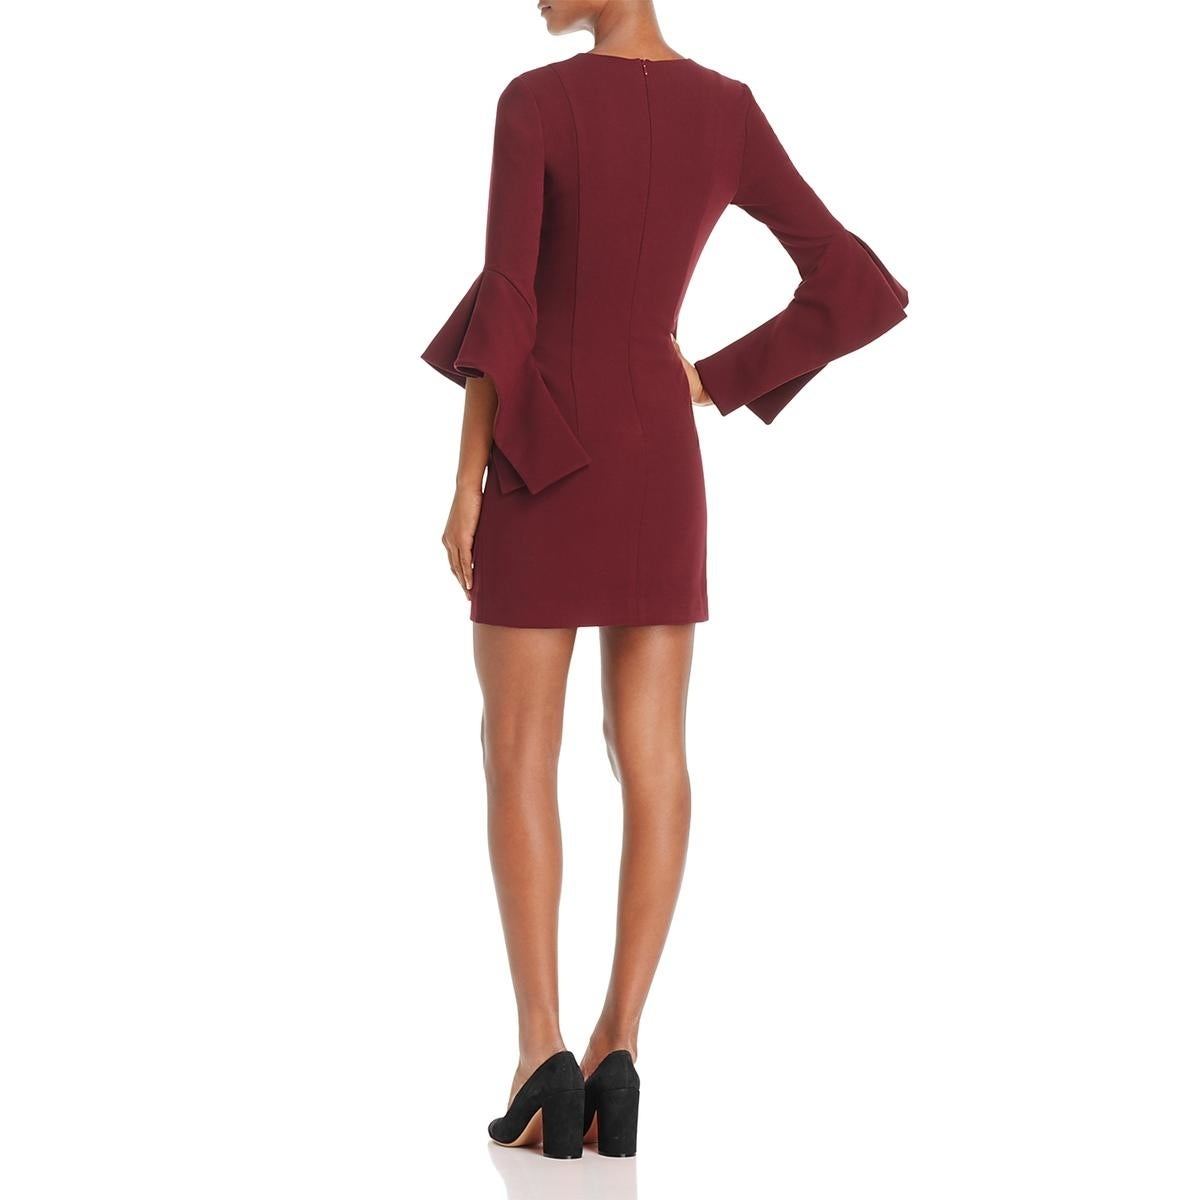 d3c1bfcd63 Shop Black Halo Womens Lorie Cocktail Dress Bell Sleeve Mini - Free  Shipping On Orders Over  45 - Overstock - 25723045